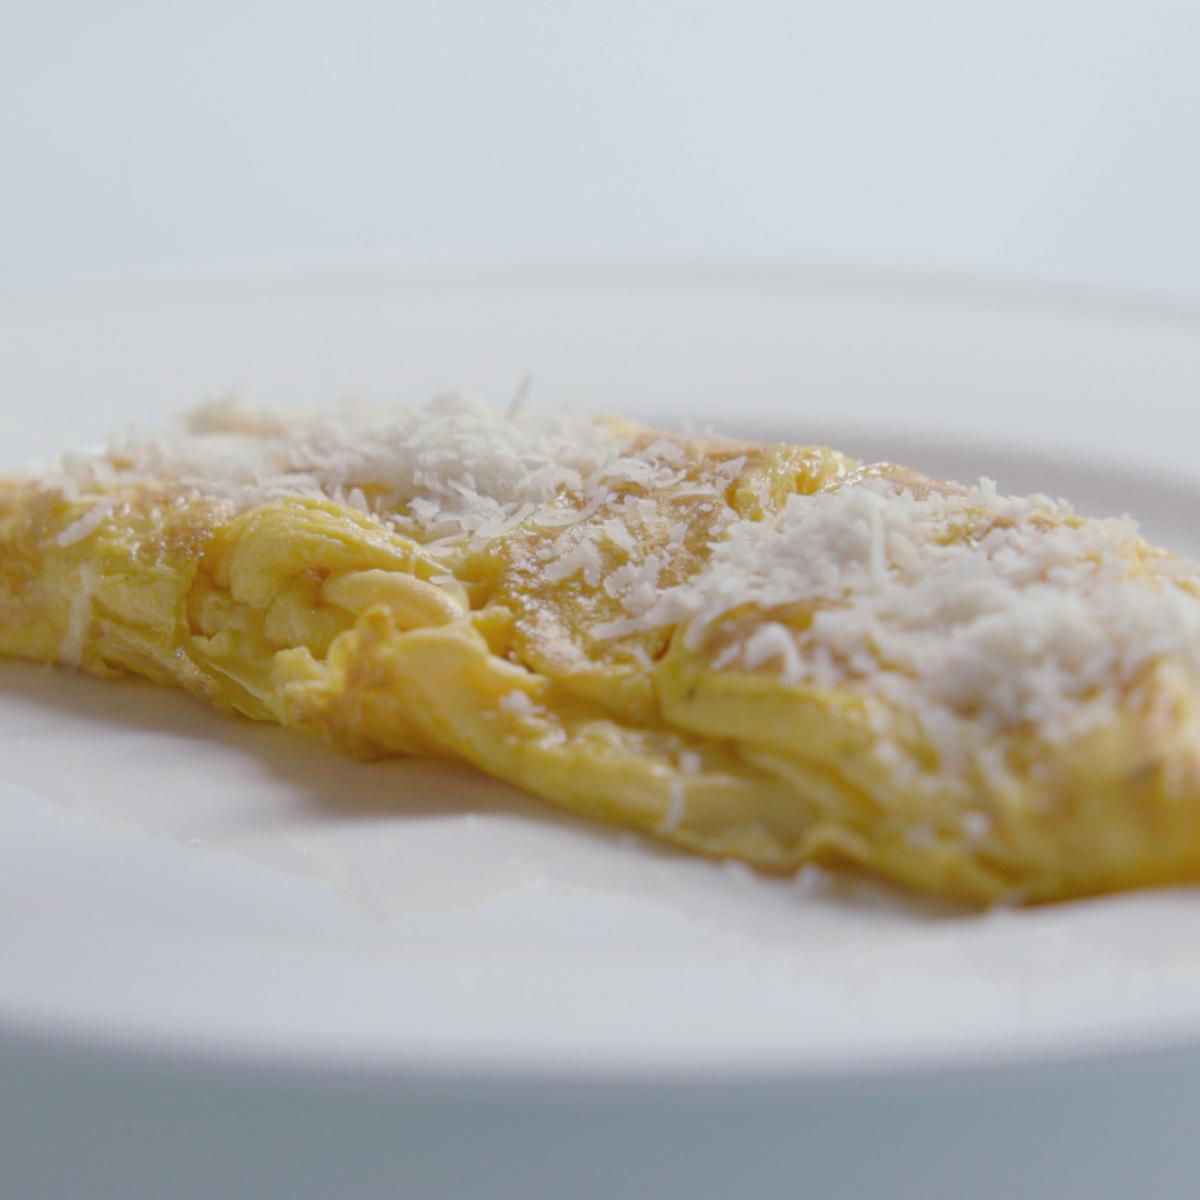 A picture of Delia's How to Make an Omelette recipe